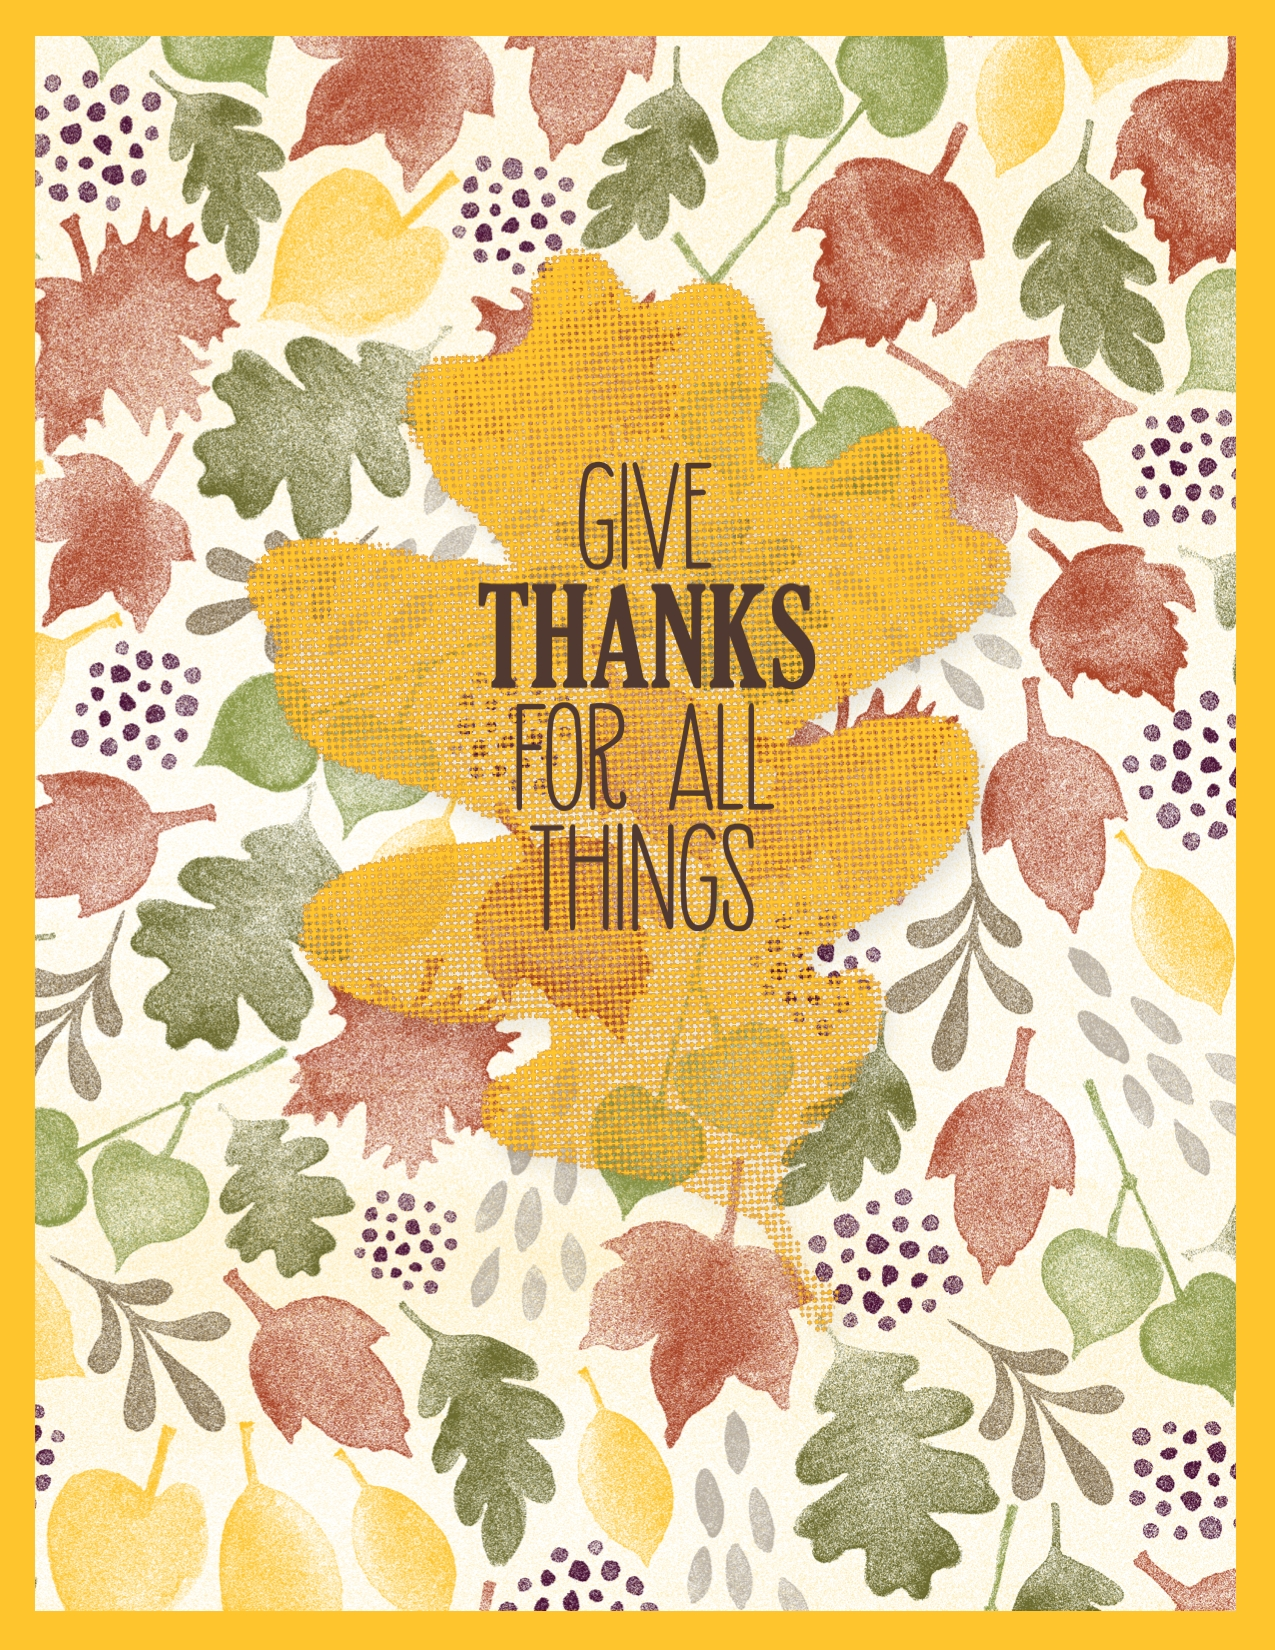 Digital fall card using the For All Things stamp brush set